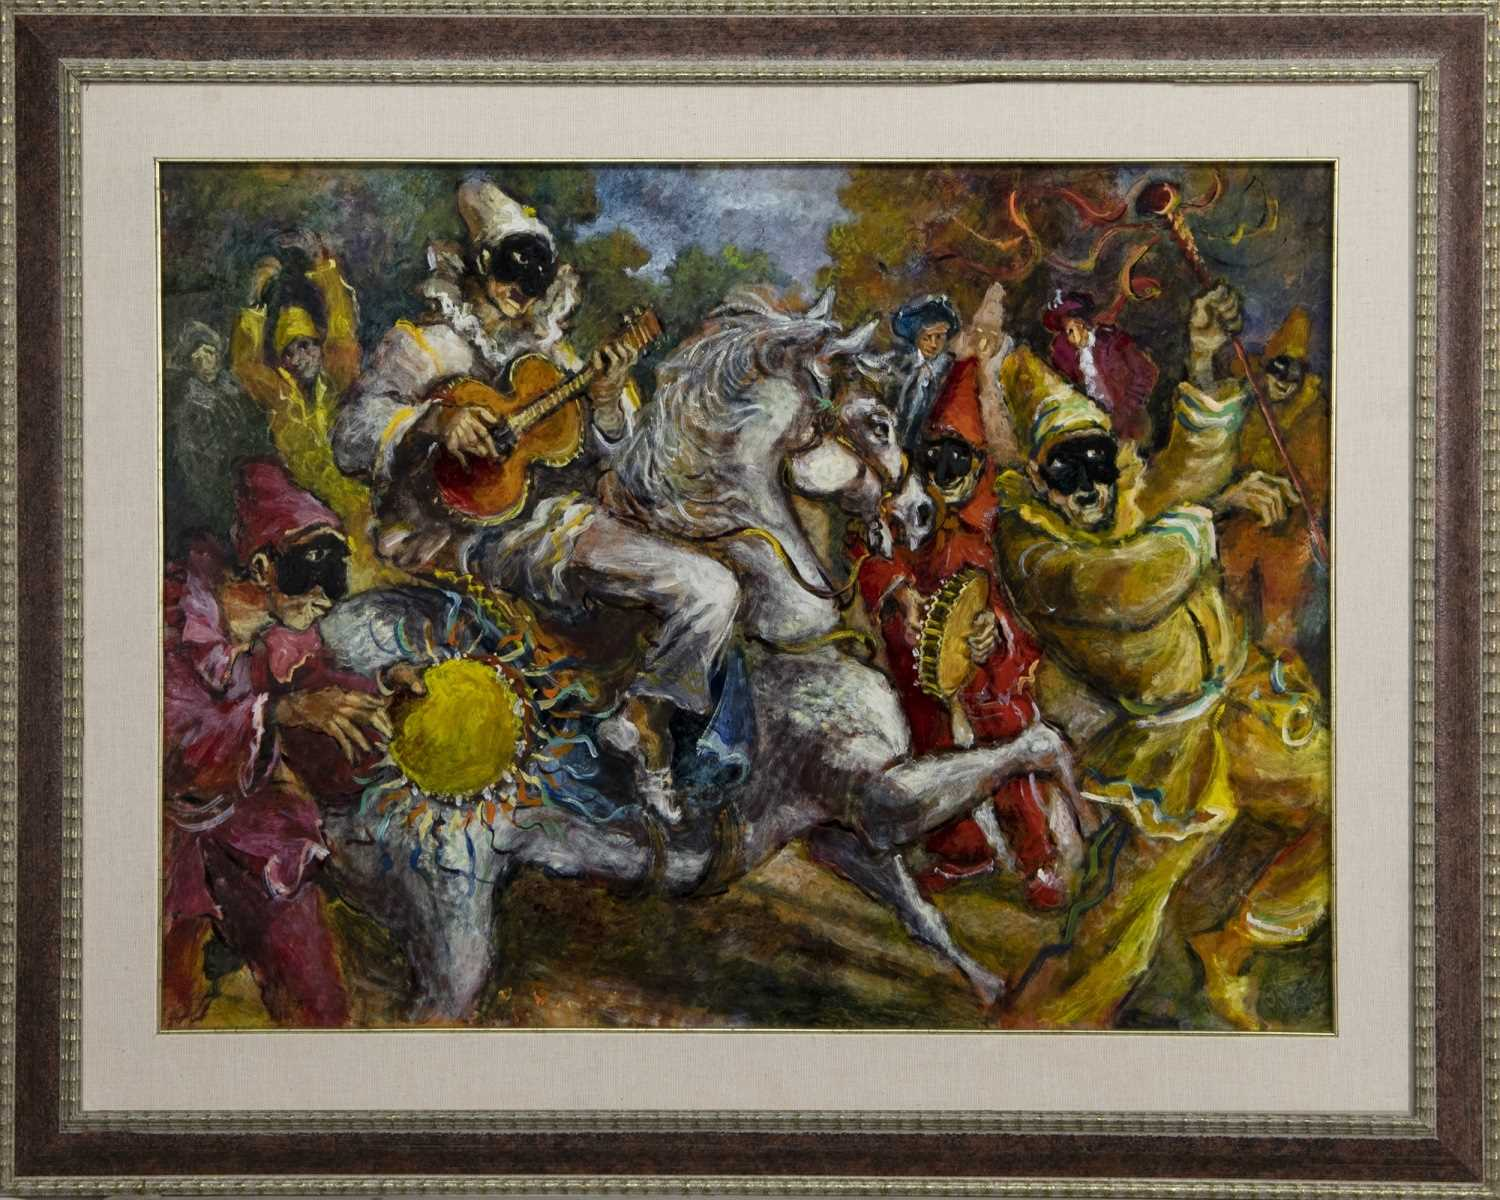 Lot 503 - PLAYING A TUNE, AN OIL BY MARIANO MAGNINI